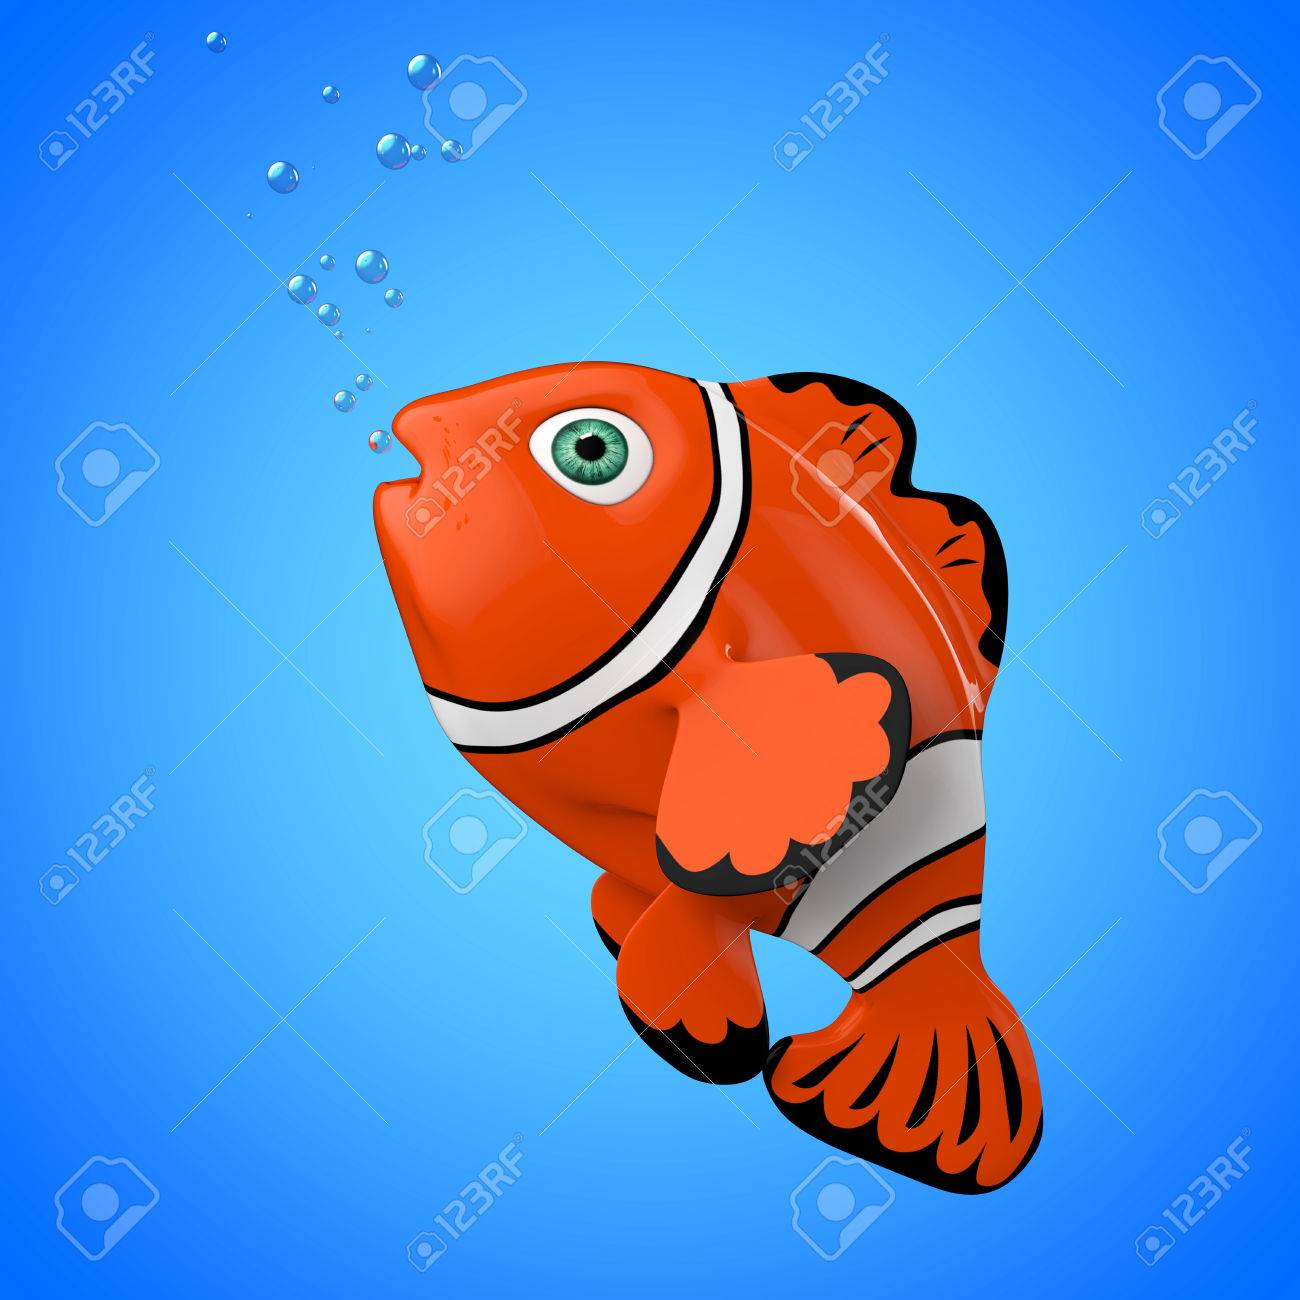 Cartoon Red Sea Clownfish On A Blue Background. 3d Rendering. Stock ...